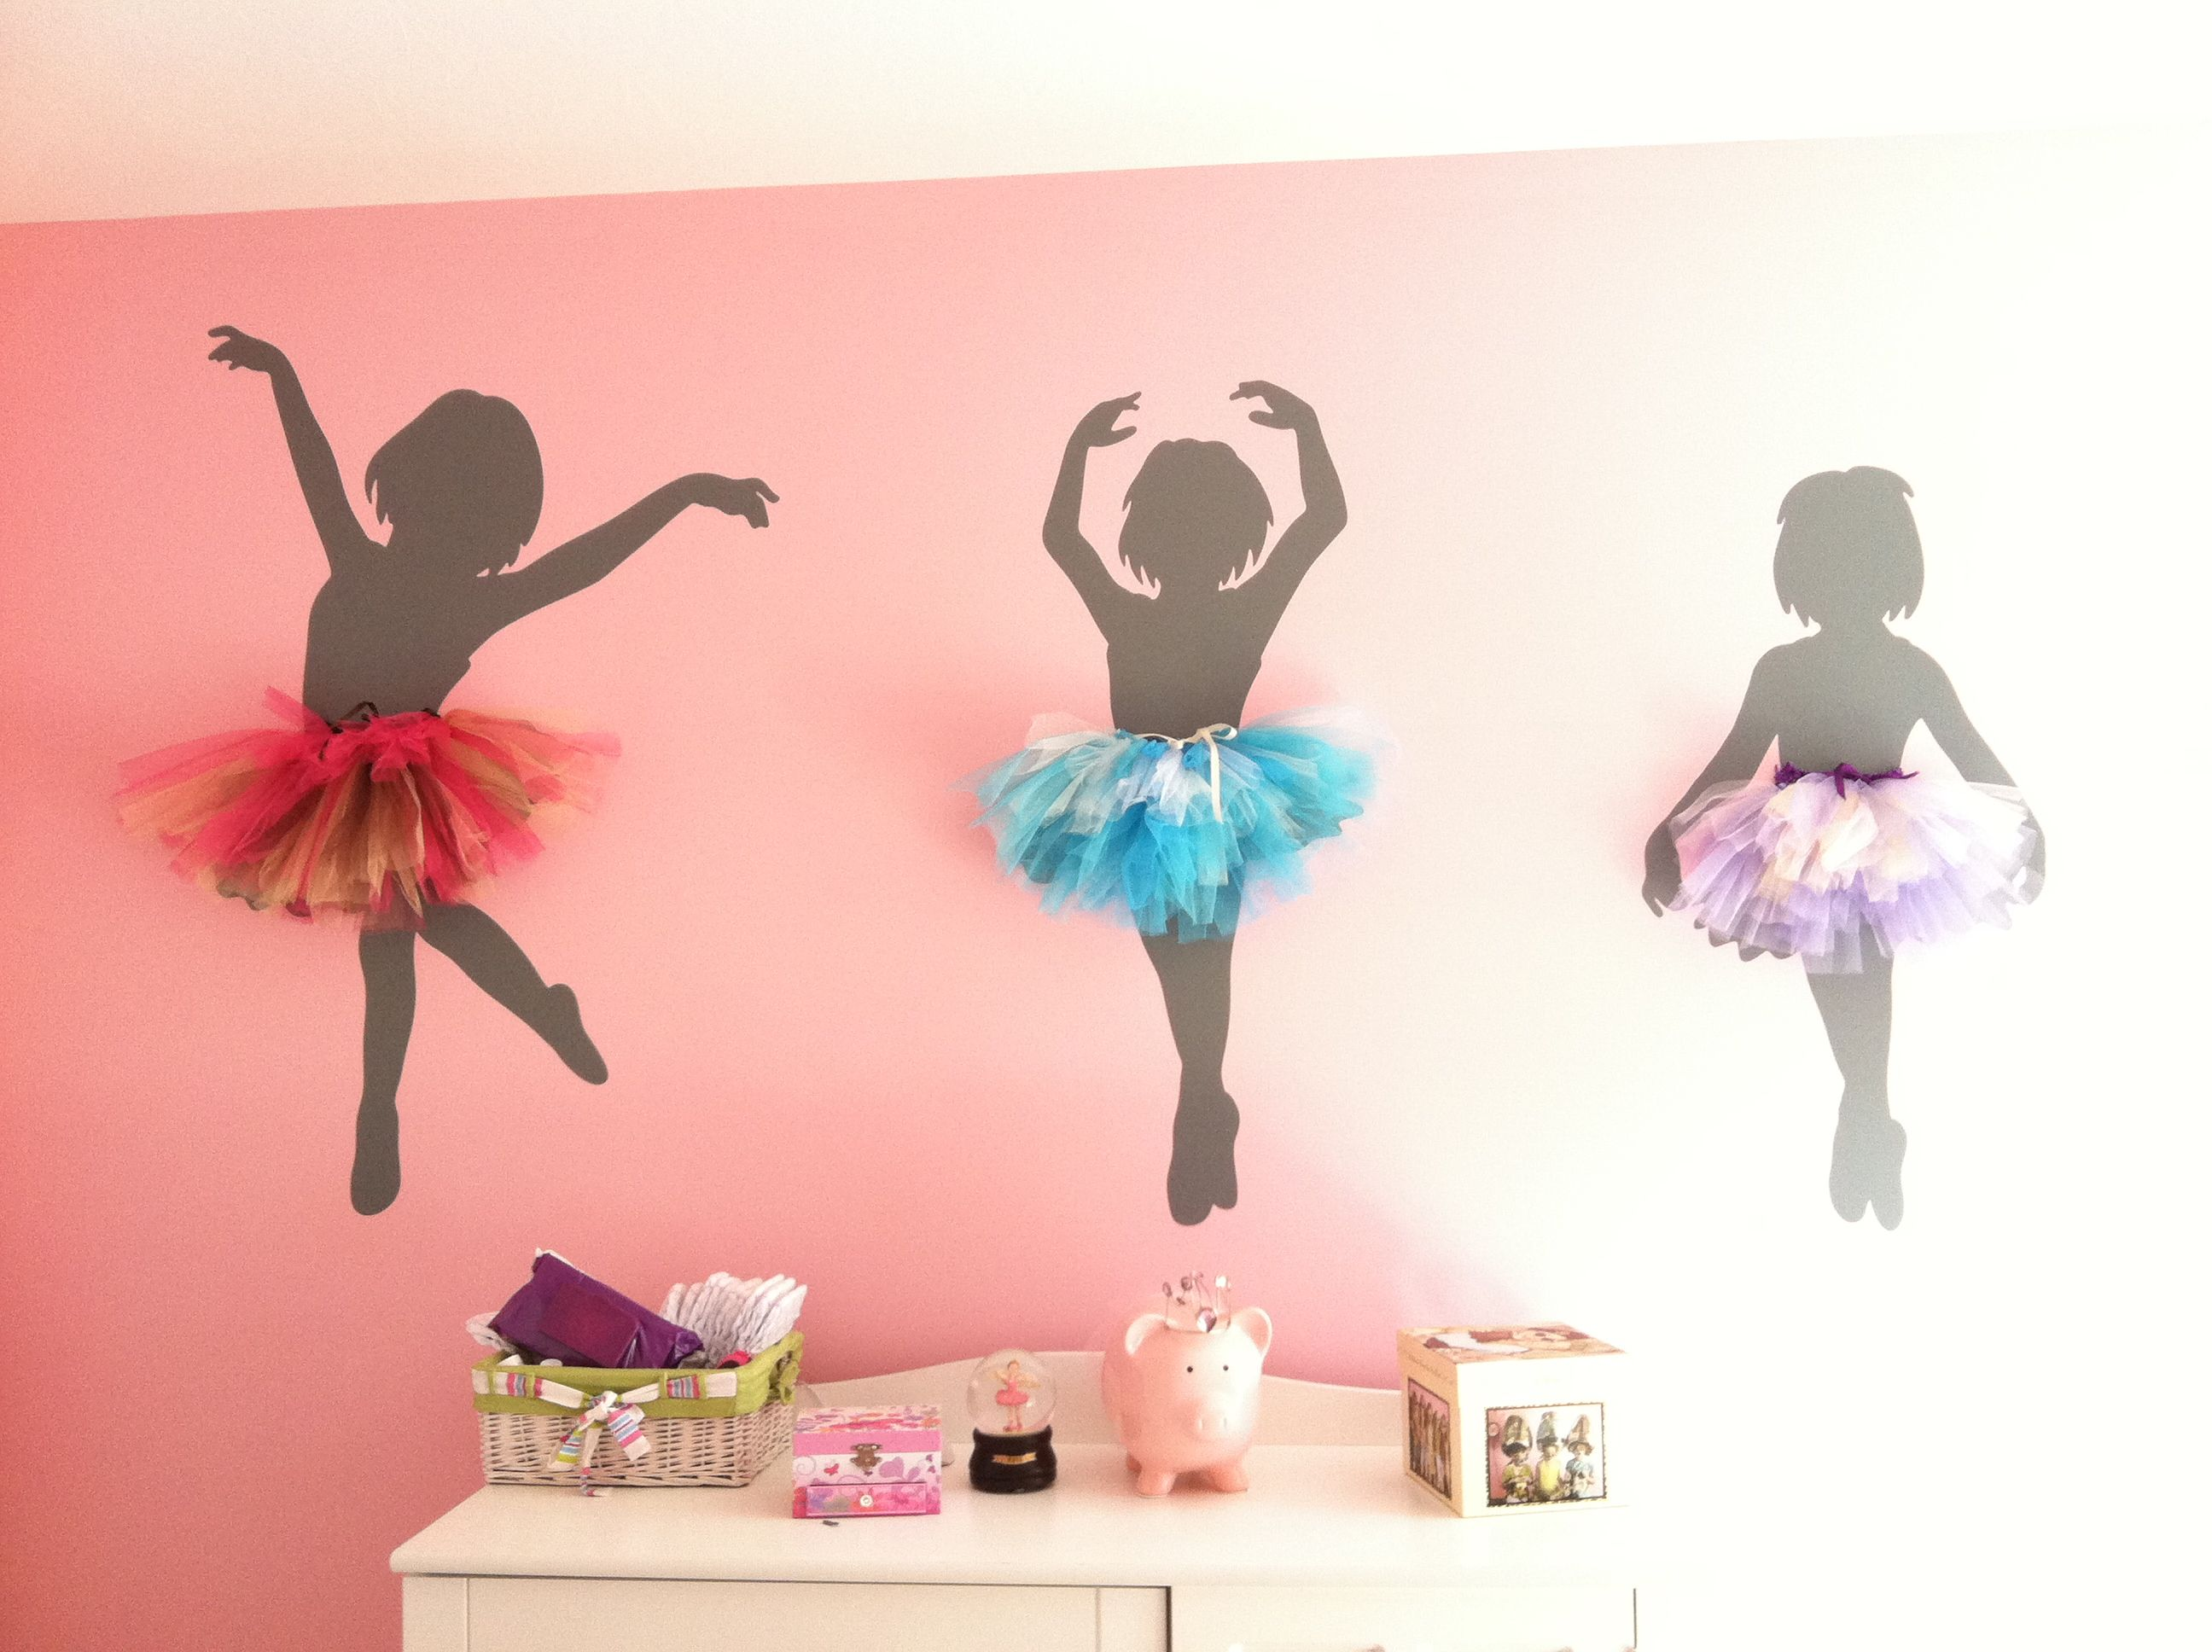 Ballerina wall decor attached tutus to wall decals with double ballerina wall decor attached tutus to wall decals with double sided tape amipublicfo Gallery